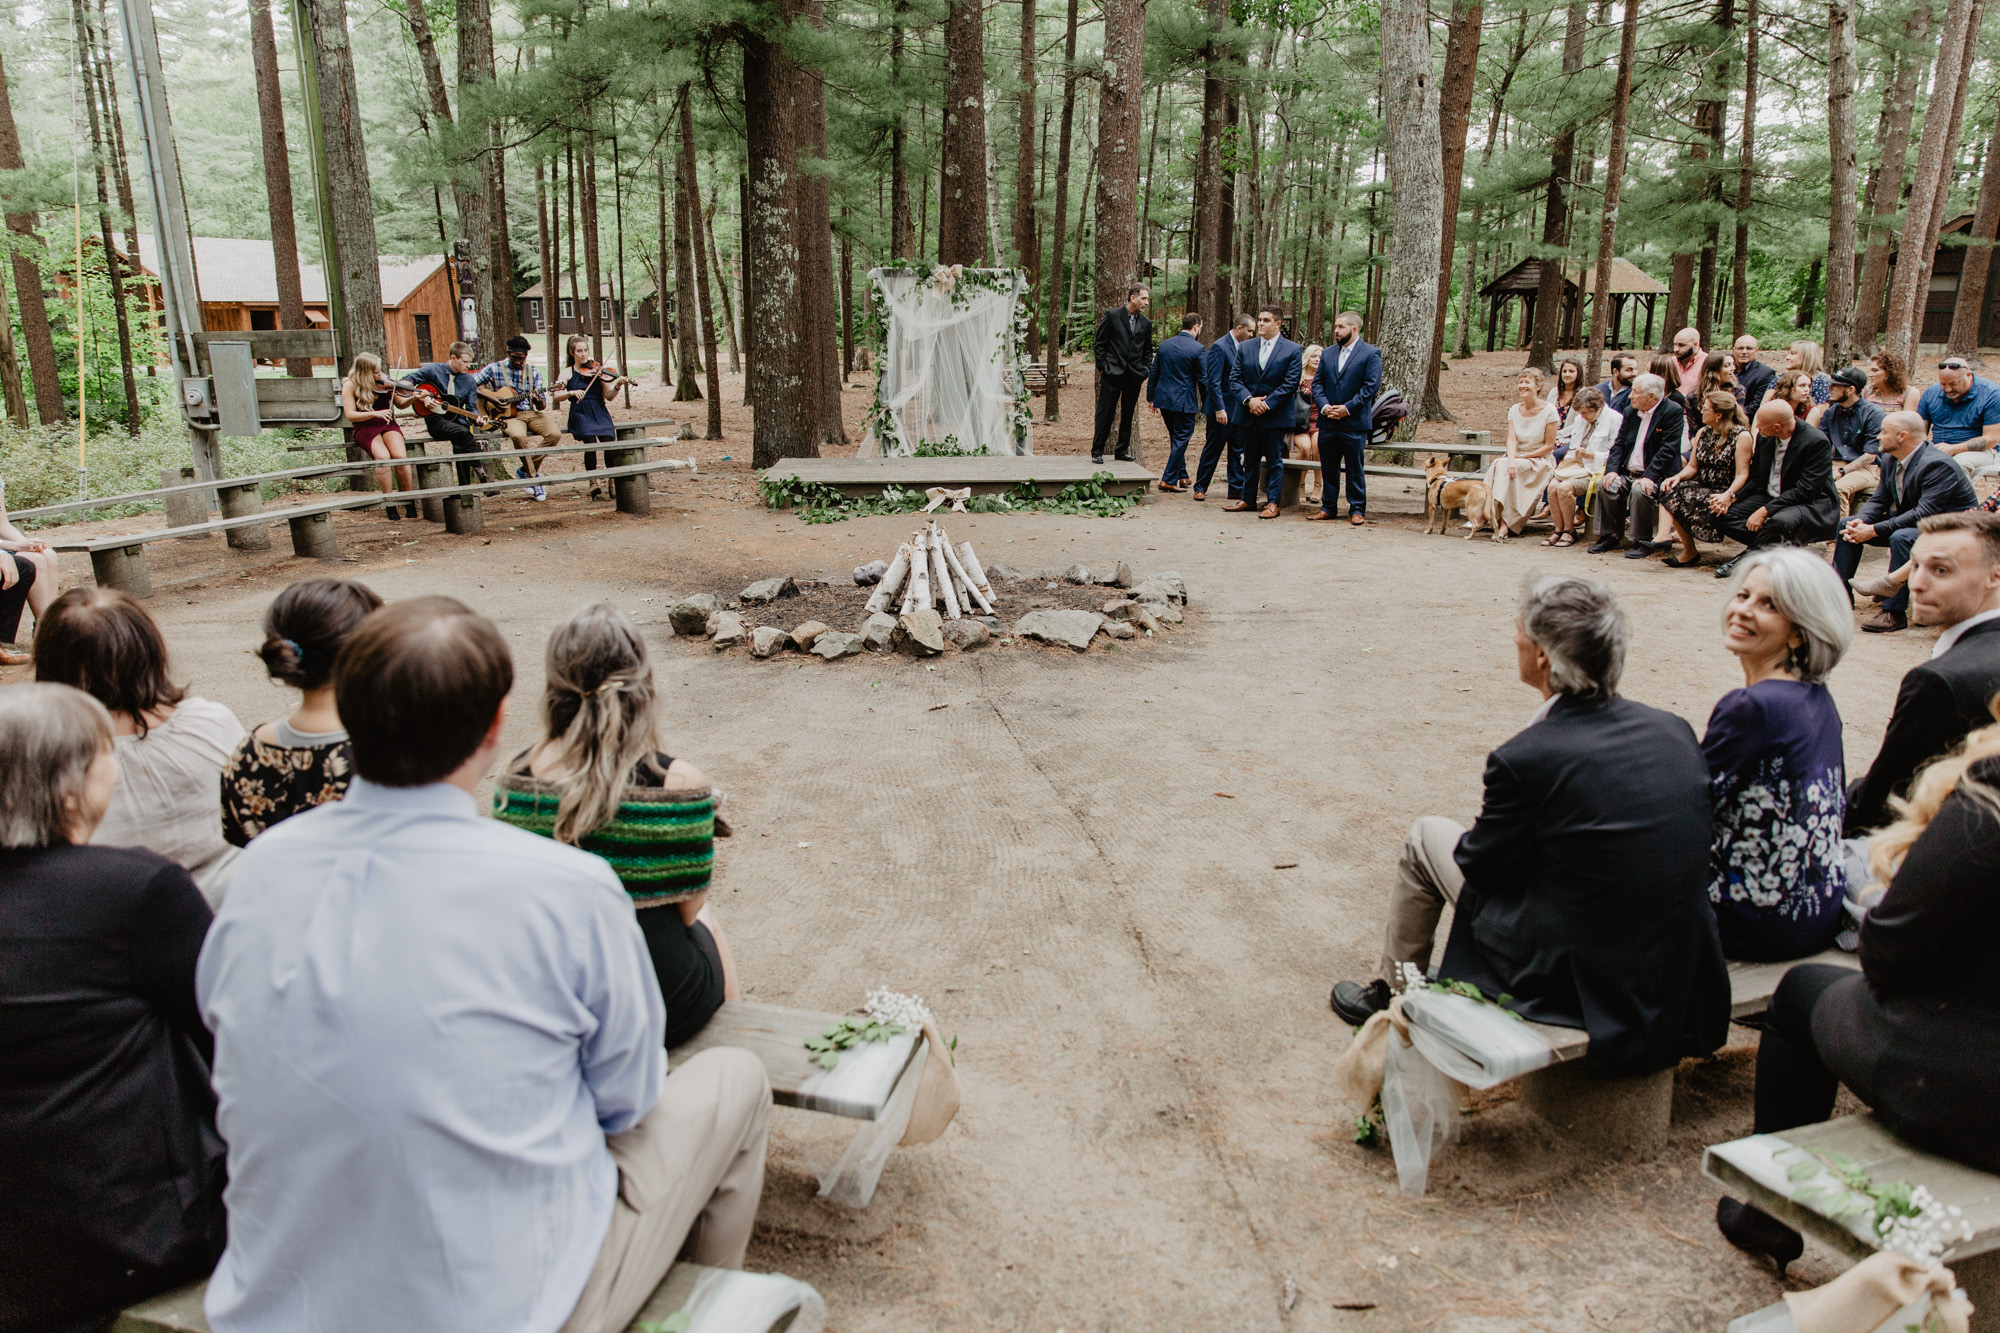 A wedding ceremony in the woods at Camp Wing summer camp